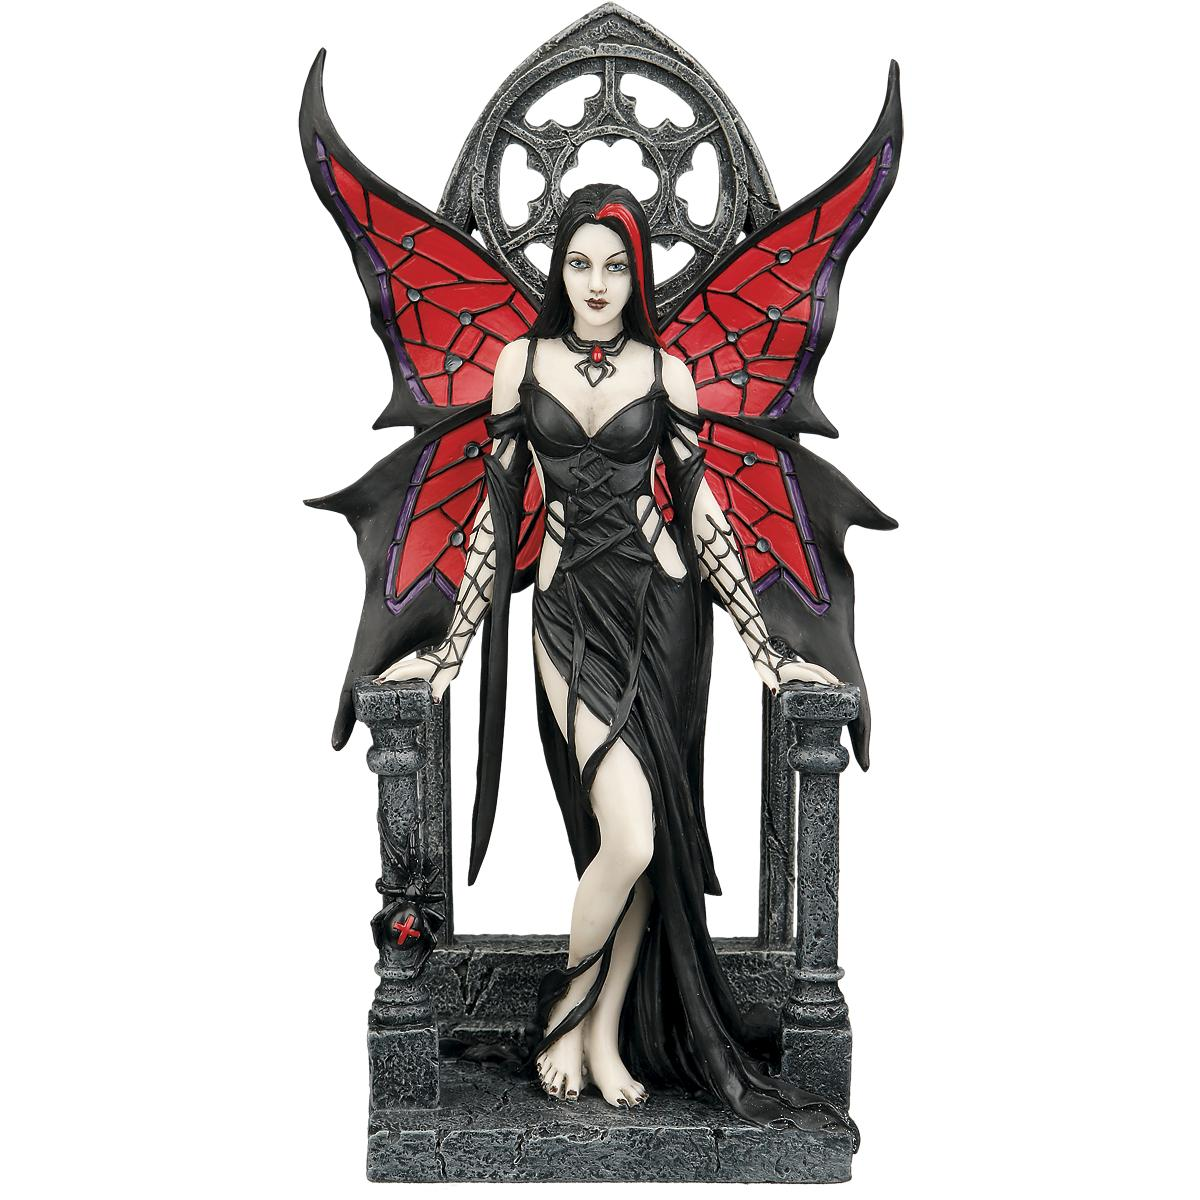 Aracnafaria - Gothic Fairy Figurine / Statue 23cm by Anne Stokes and Nemesis Now